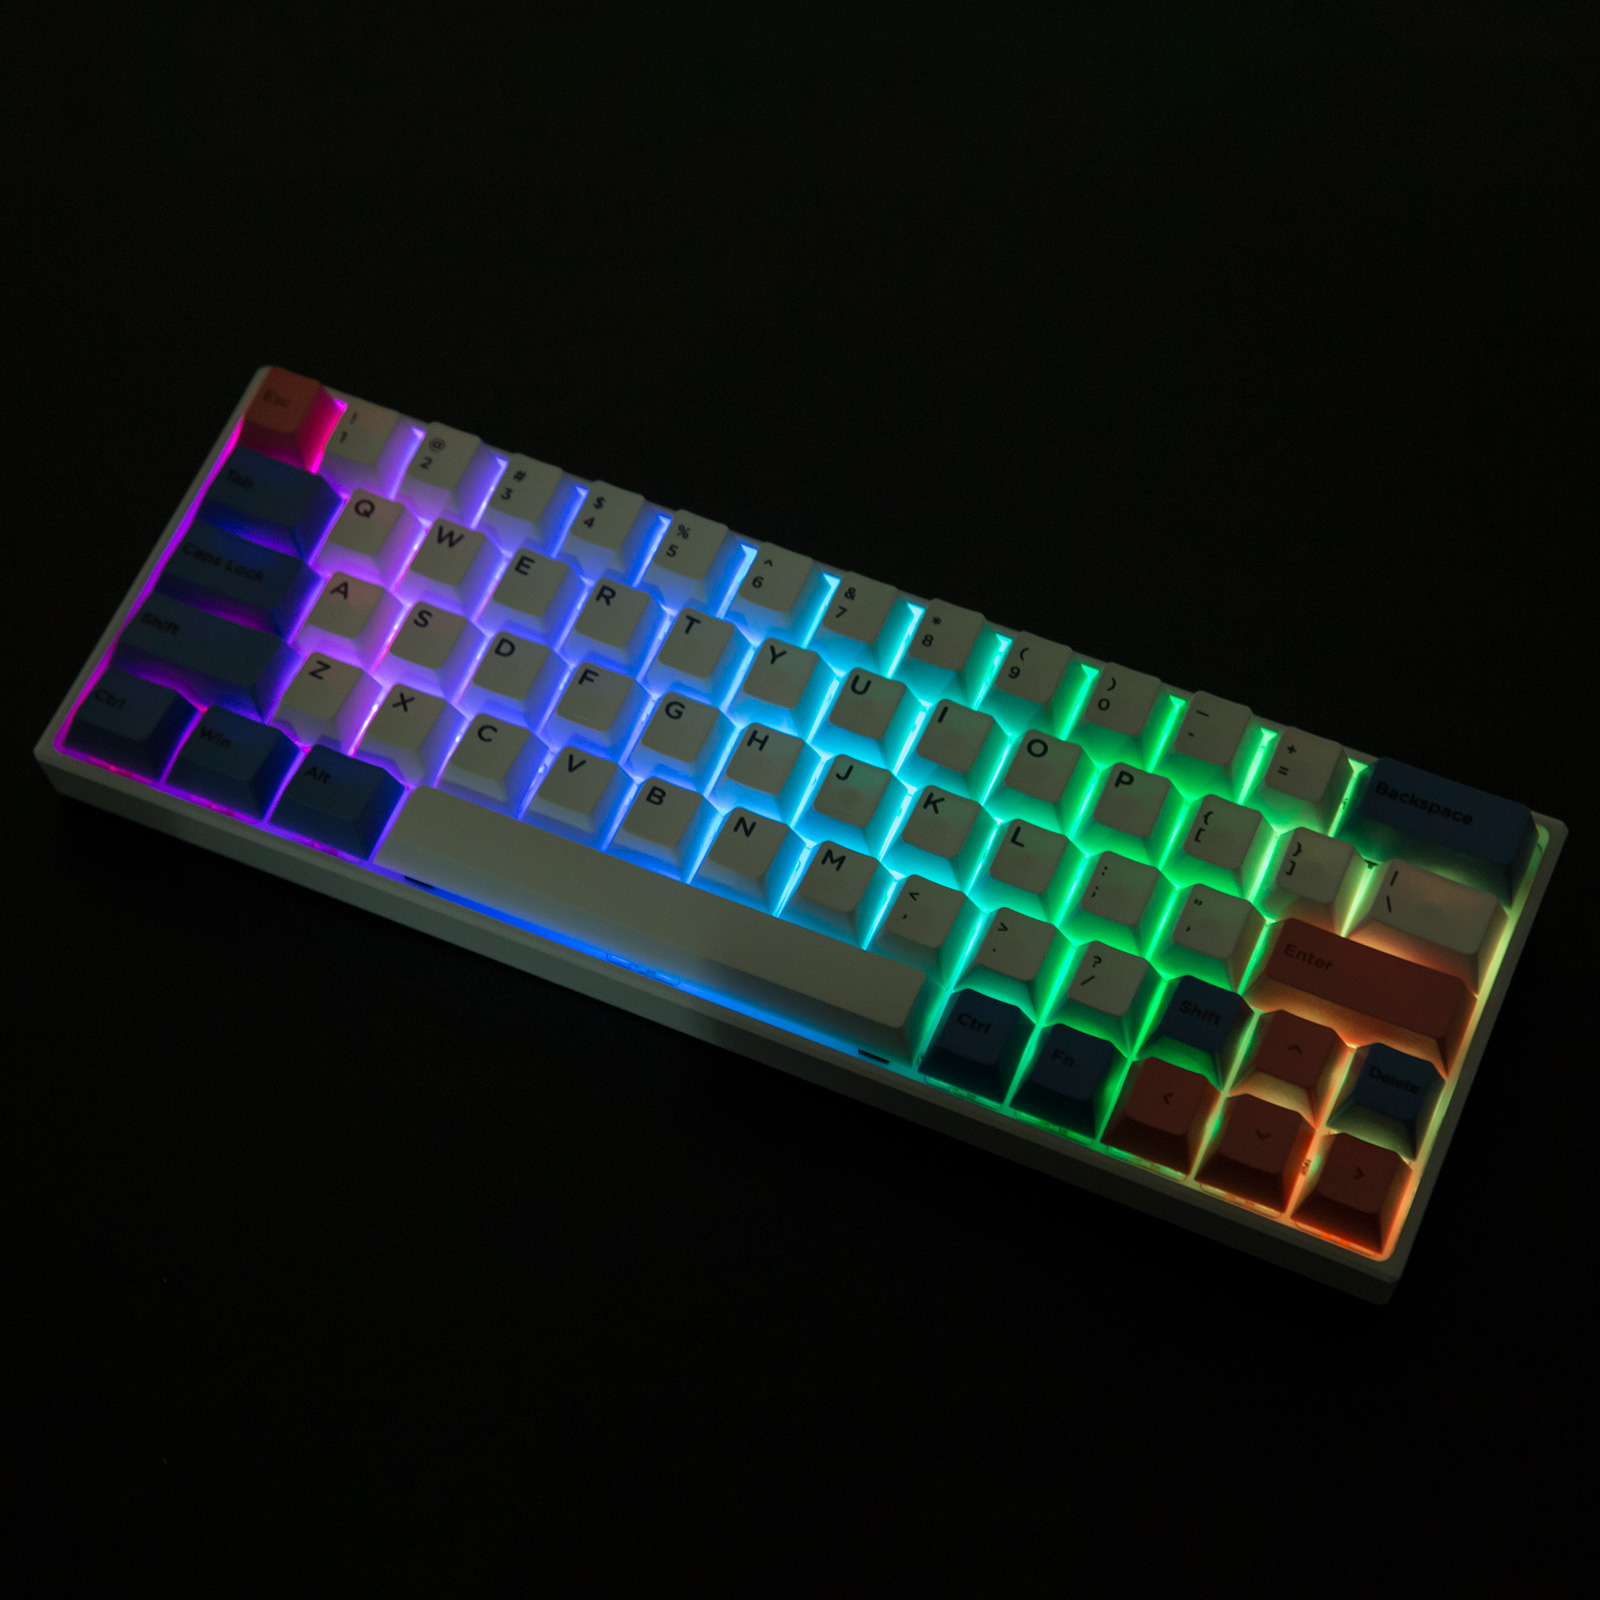 YC64 64-Key Gaming Mechanical Keyboard Hot Swappable PBT Keycaps RGB Bluetooth Wireless Wired Dual-mode for Windows/Mac/Andoid